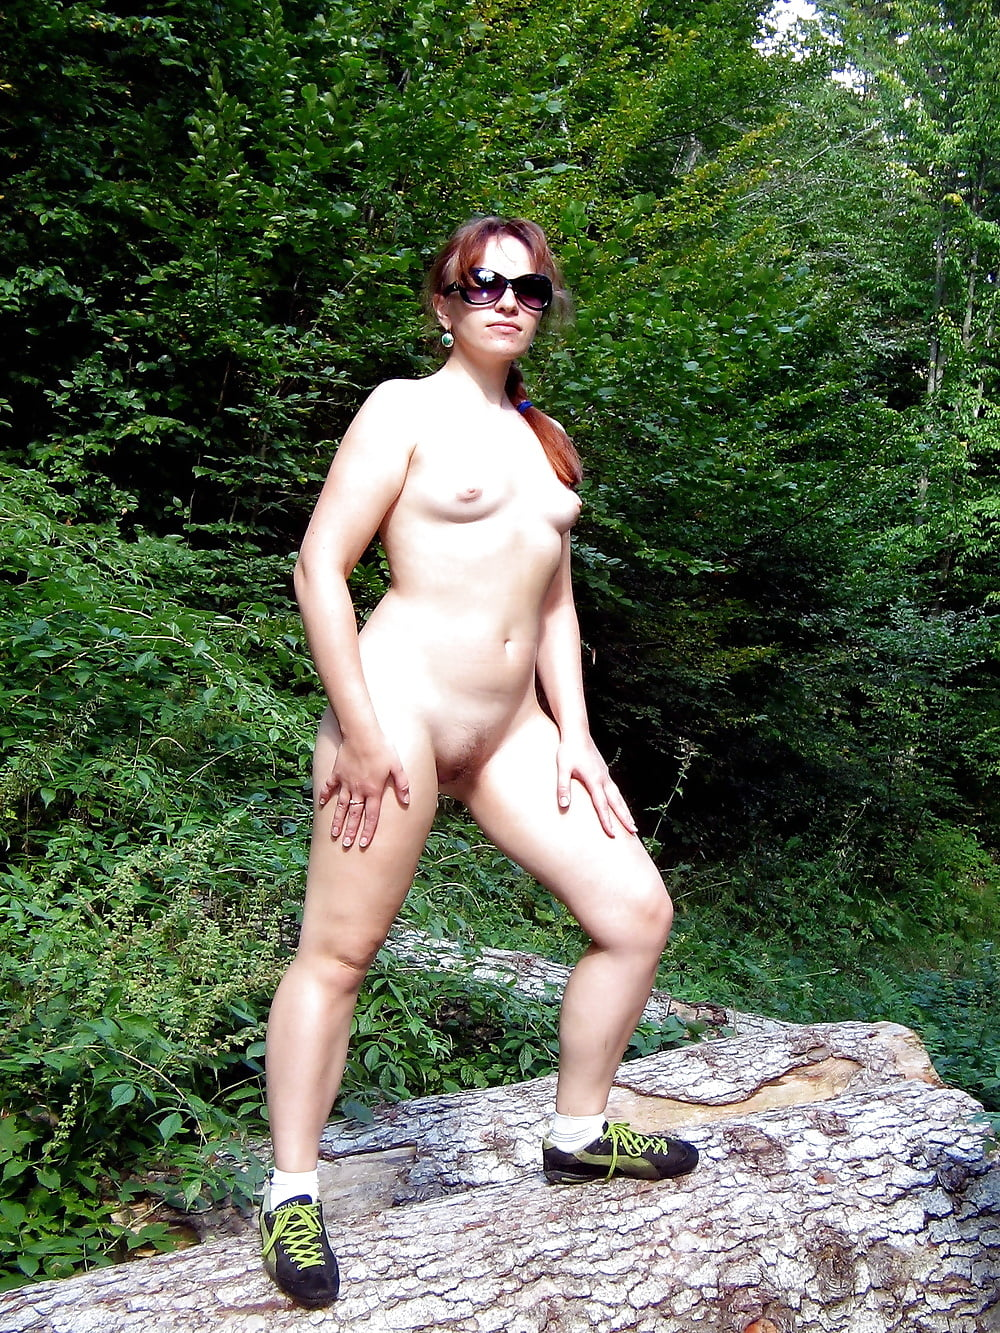 pooping-female-nude-outdoor-pics-mixed-girl-playing